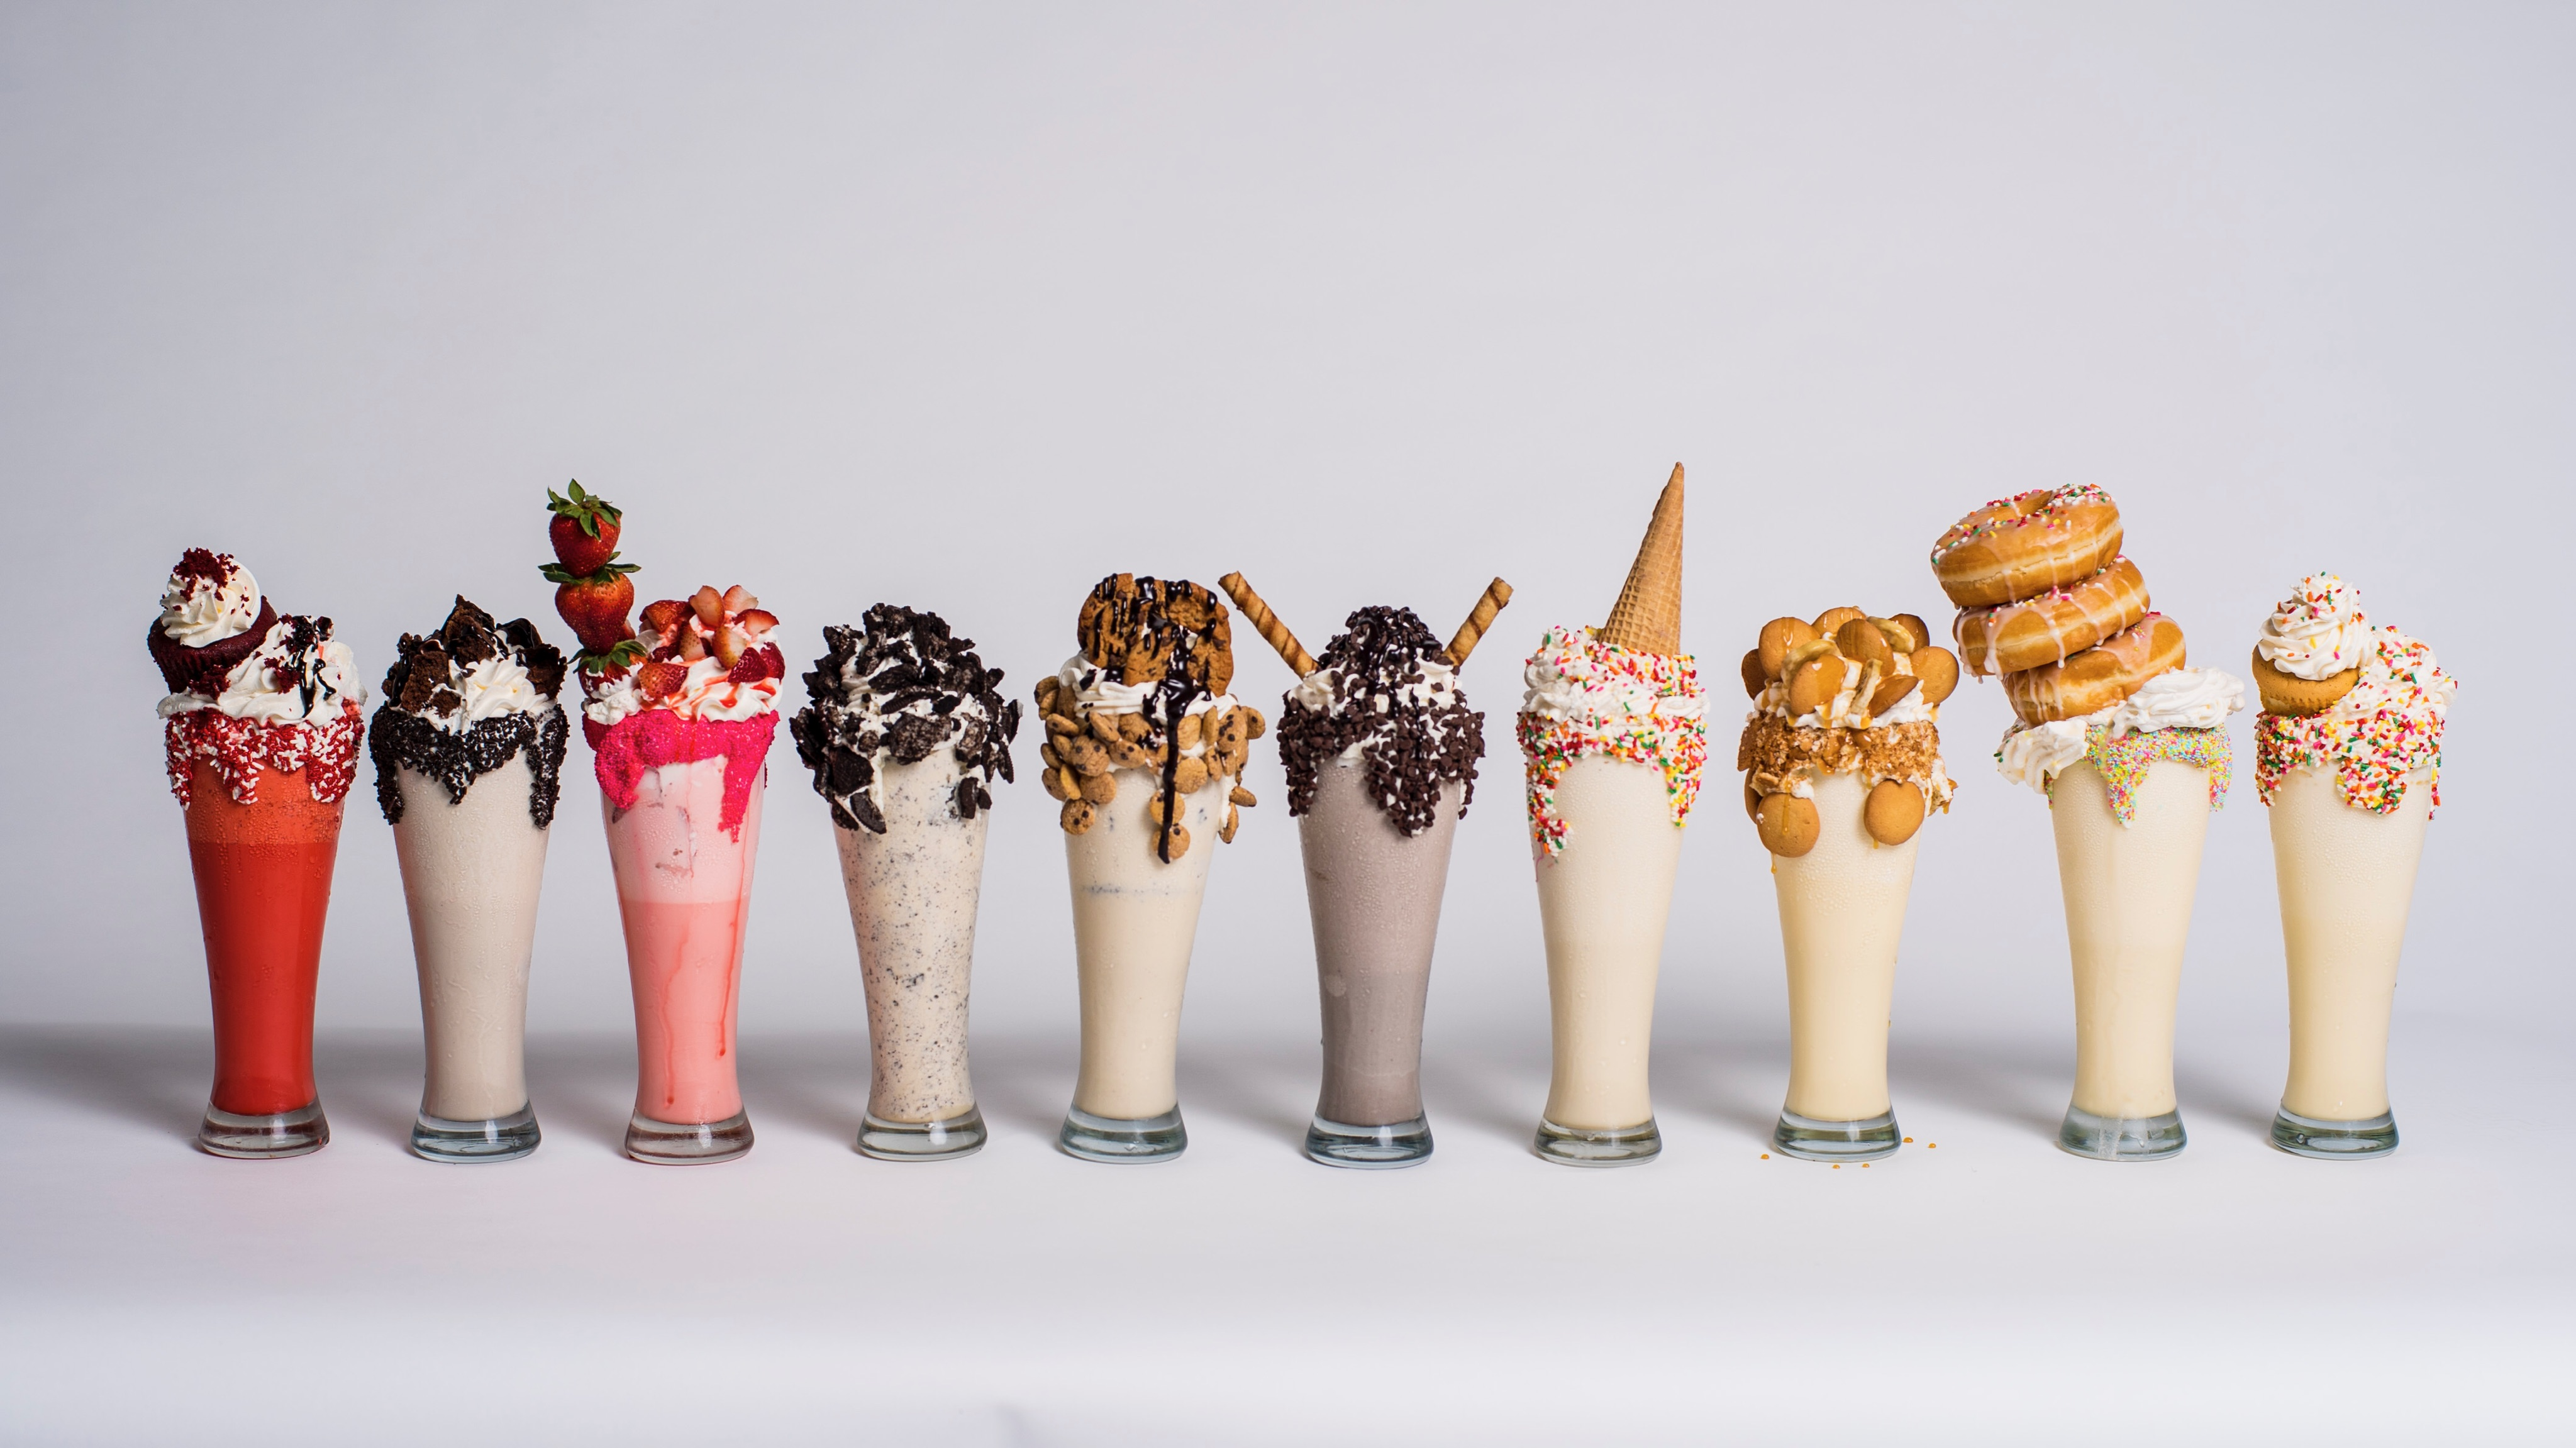 An assortment of shakes at My Fair Sweets.